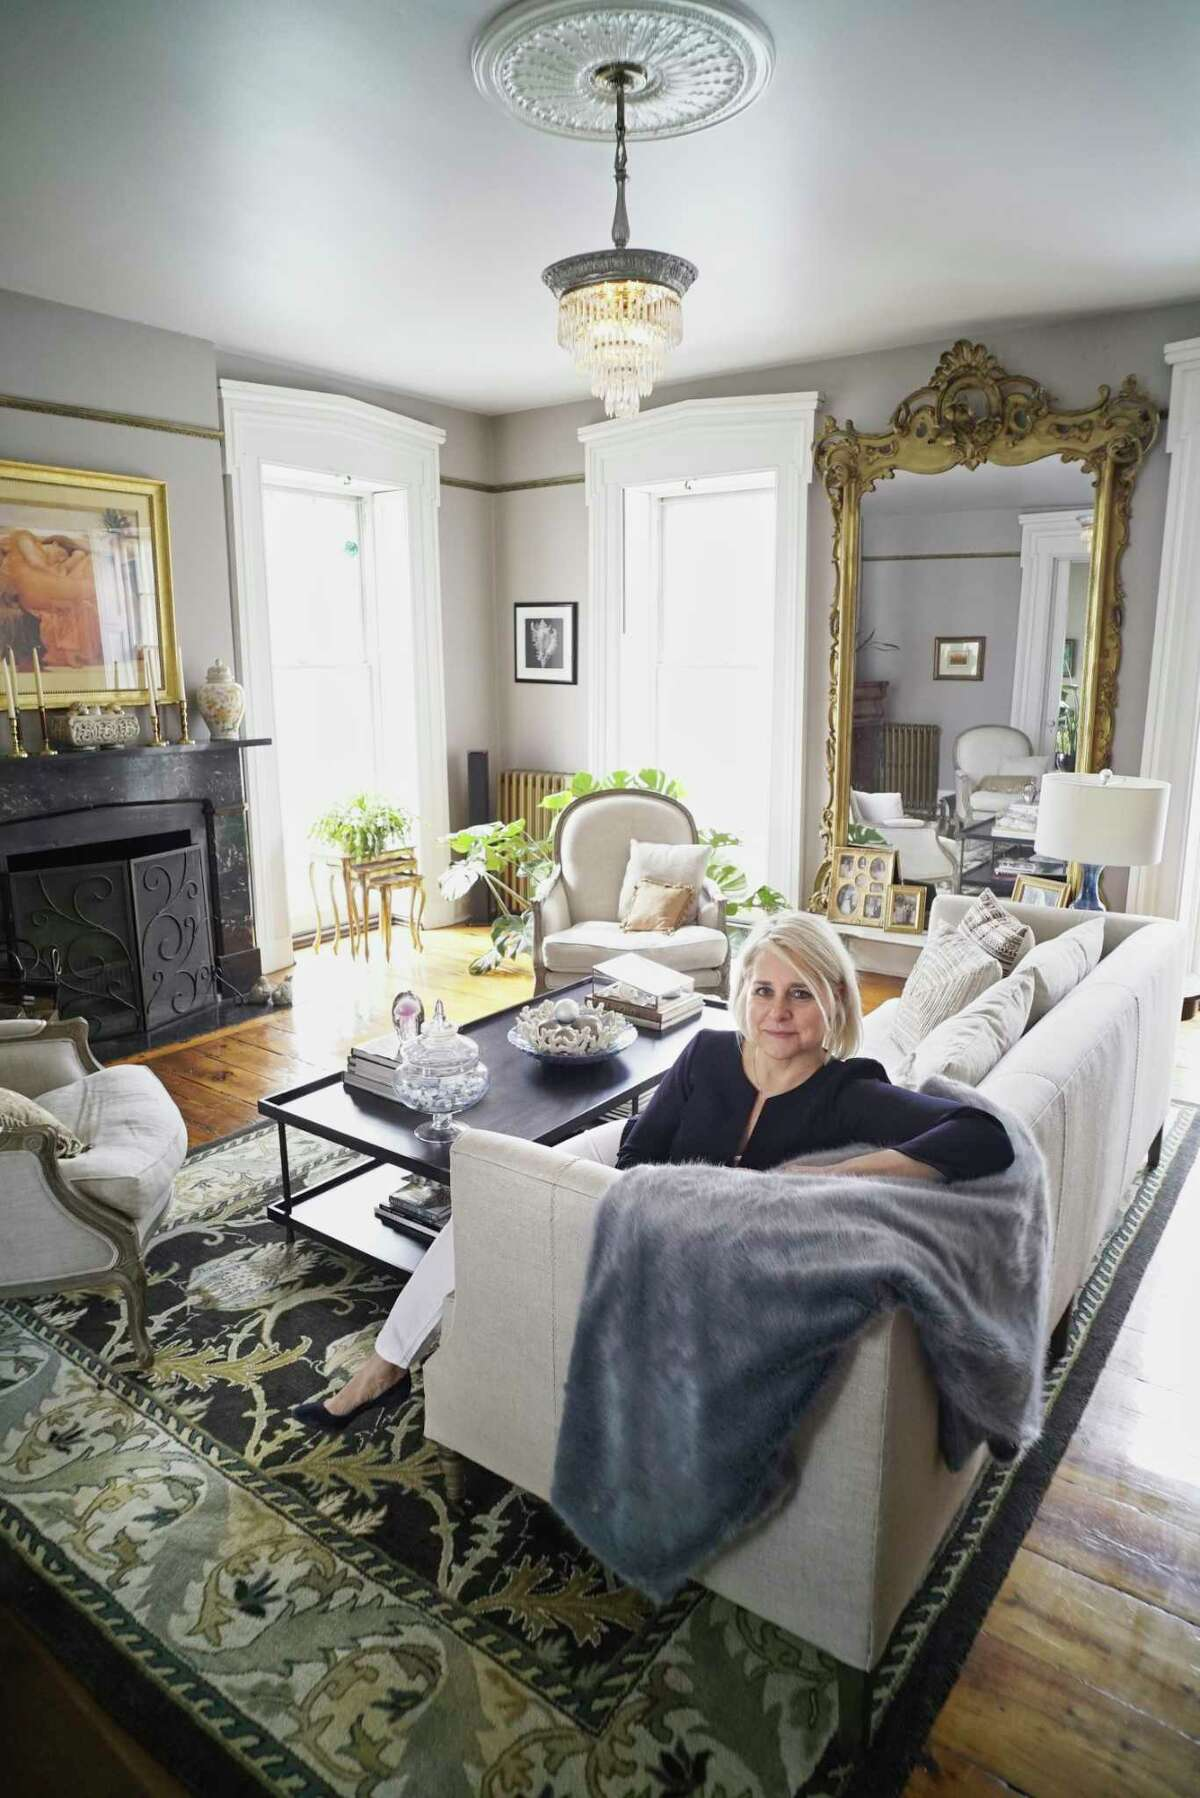 Stephanie Pettit poses for a photo in the living room at her home on Tuesday, March 12, 2019, in Troy, N.Y. (Paul Buckowski/Times Union)